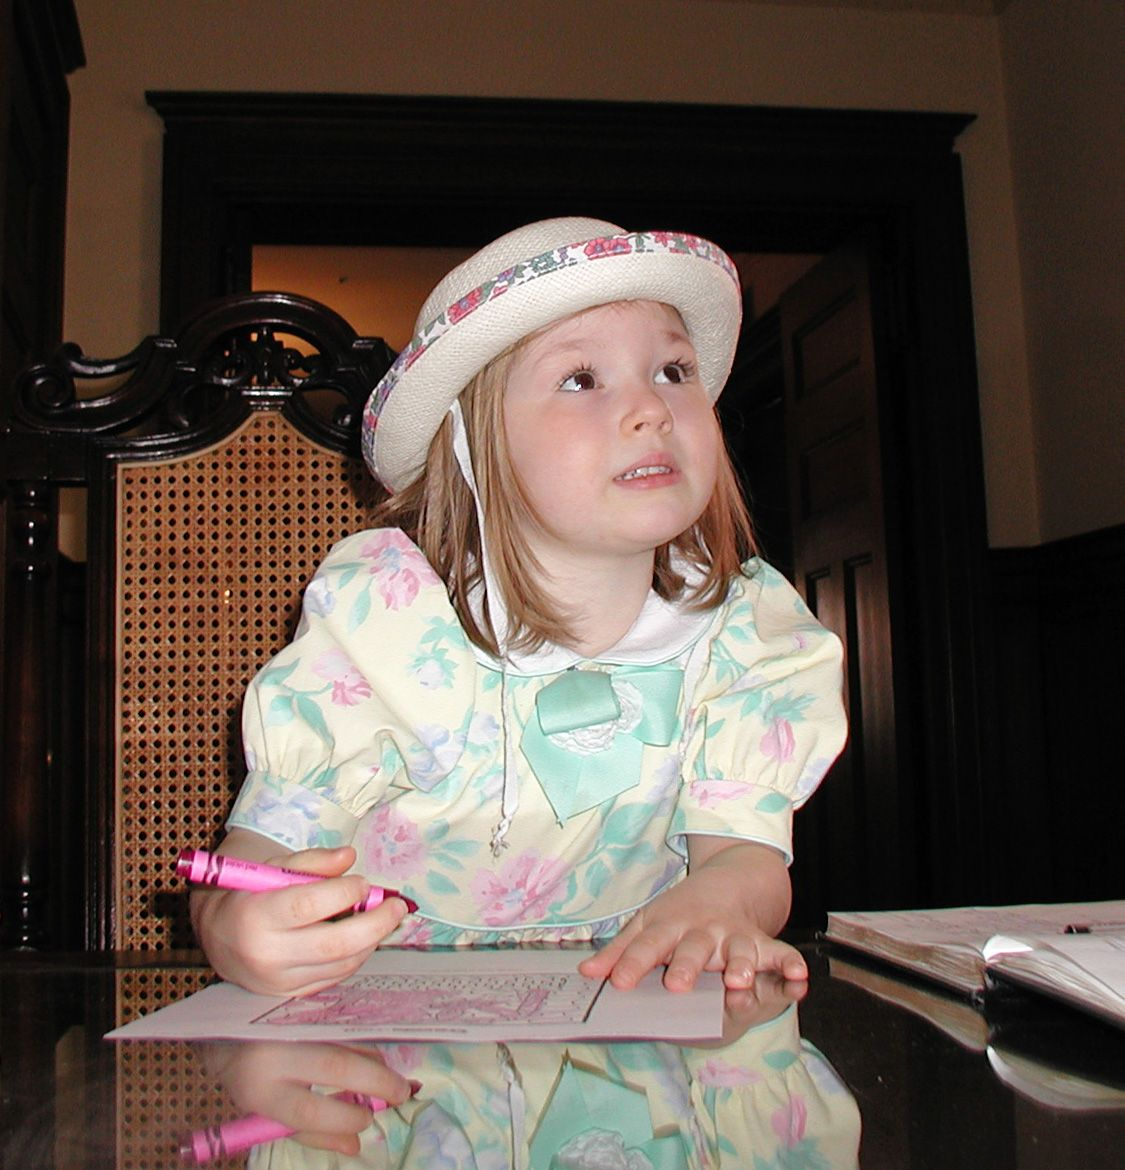 In her Easter bonnet, coloring while waiting for time for church to begin.